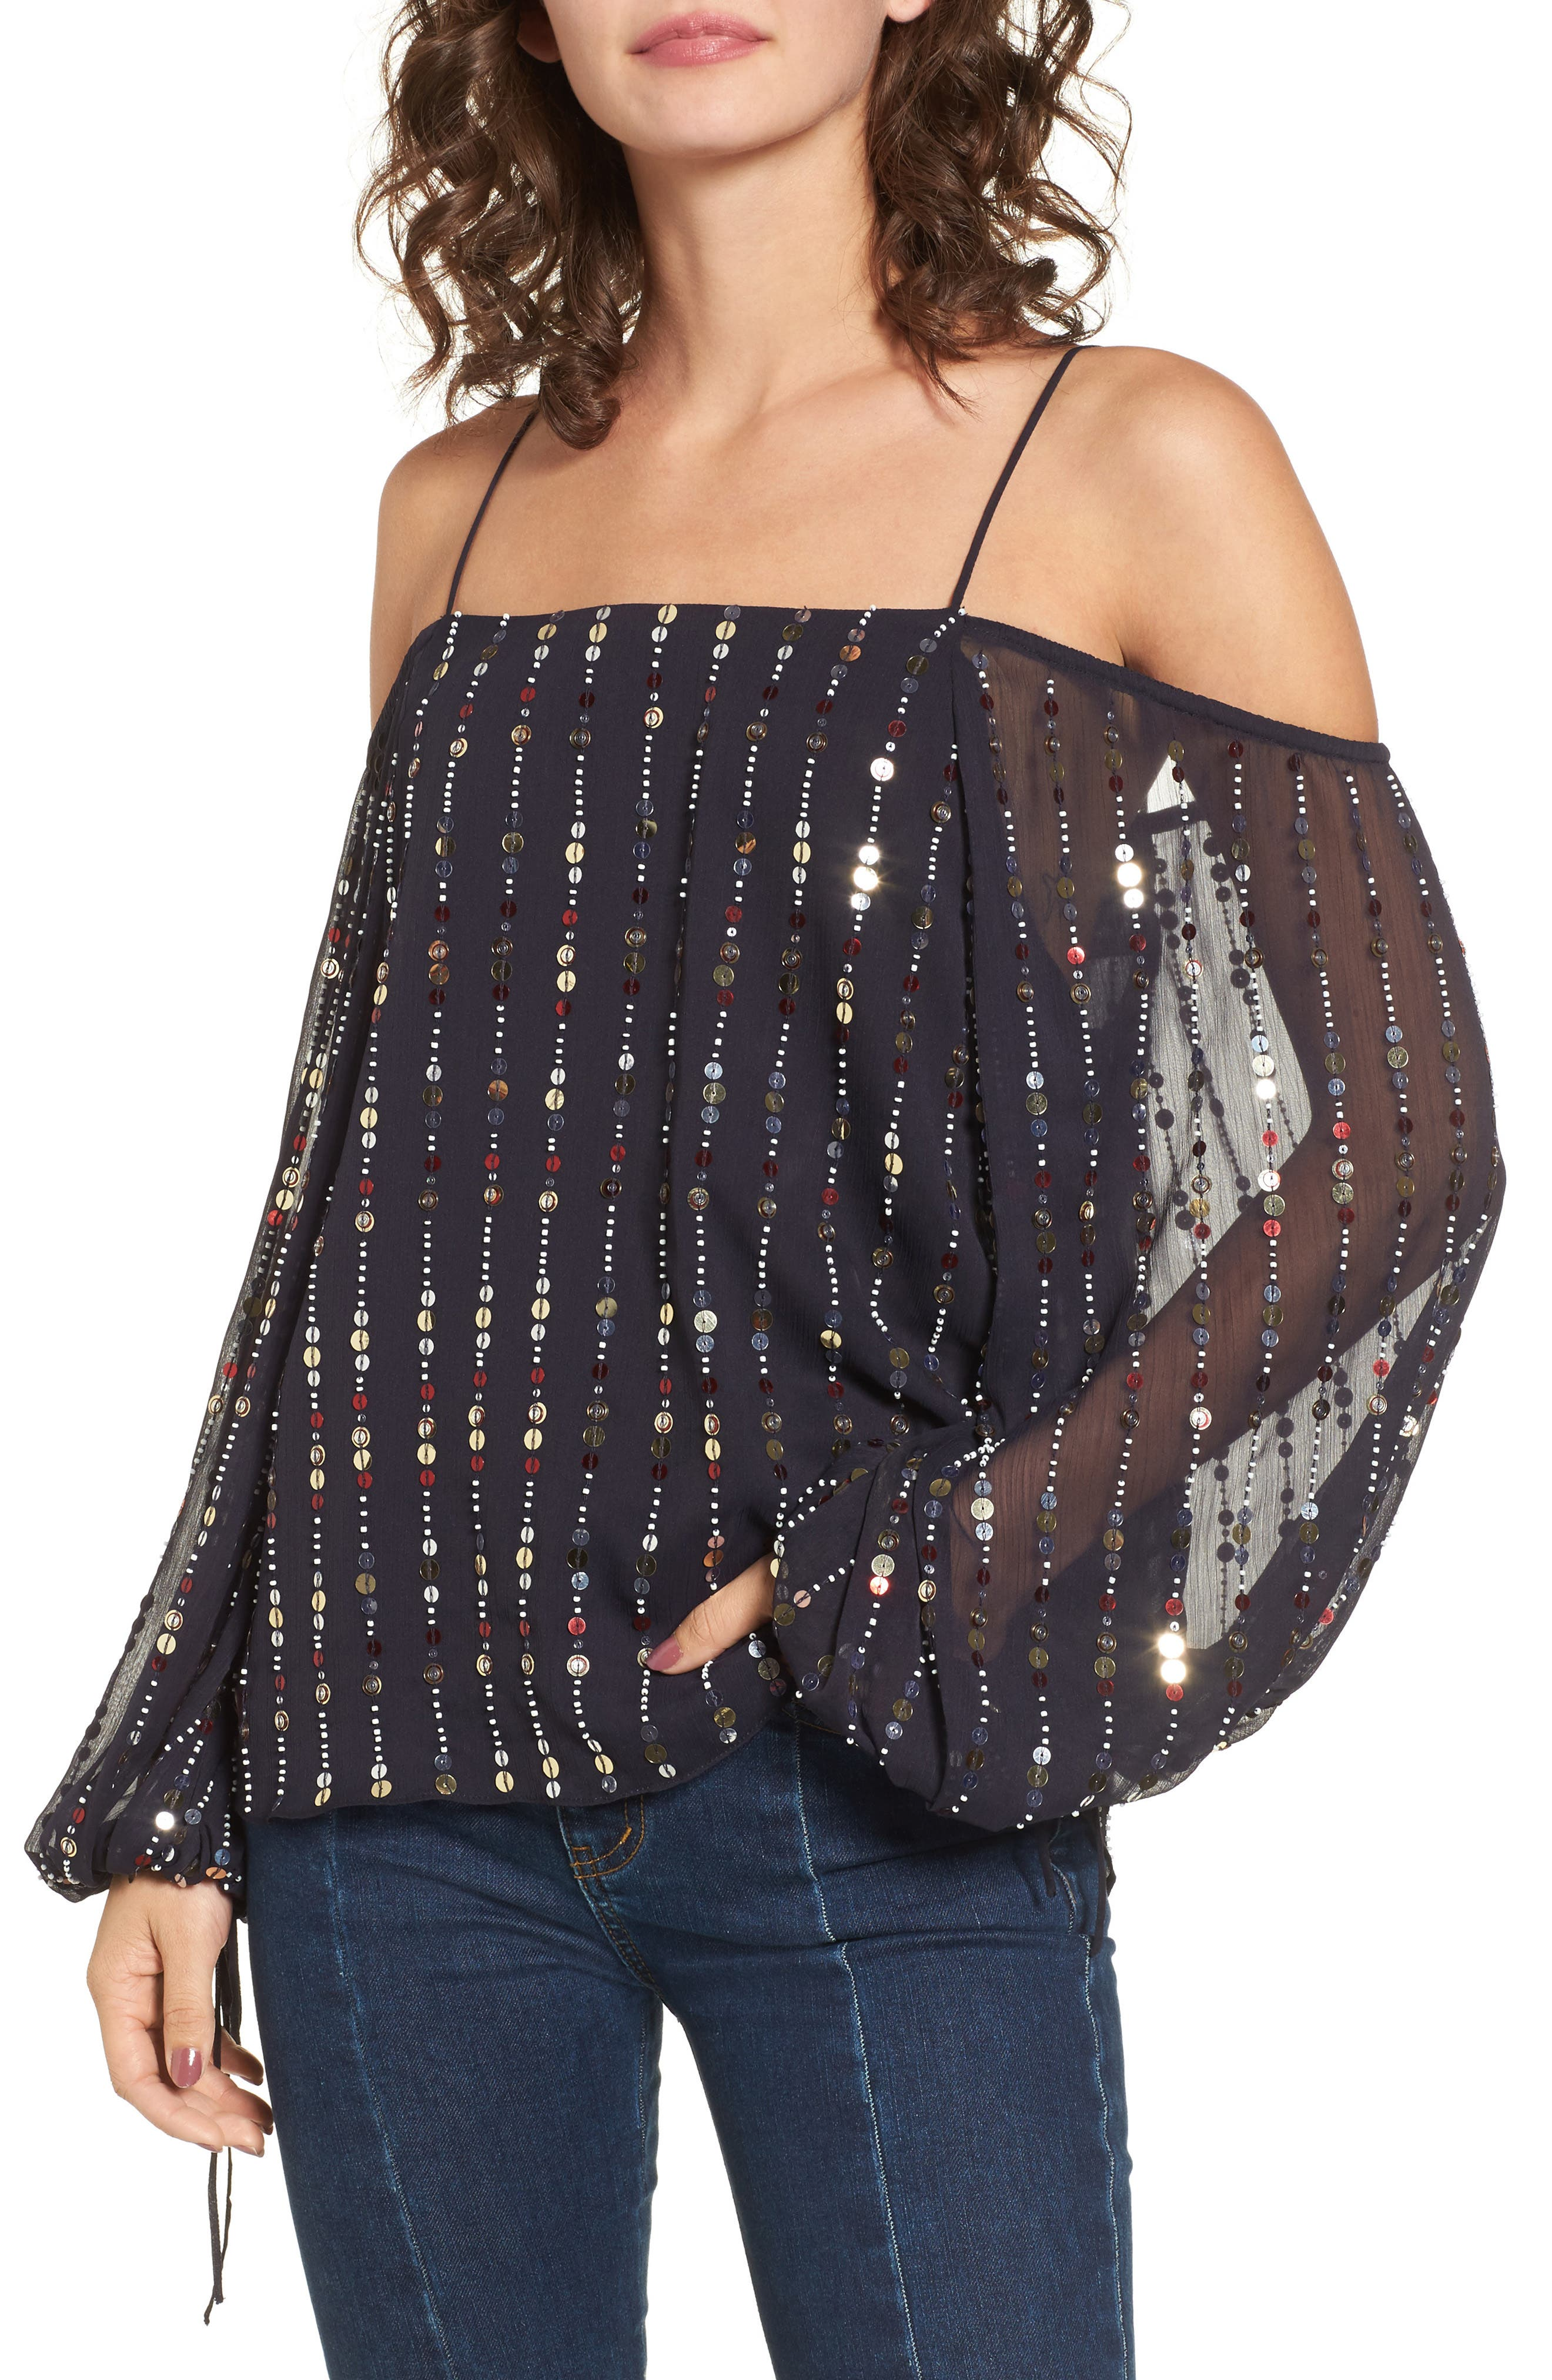 Alternate Image 1 Selected - Tularosa Cleo Sequin Date Night Blouse